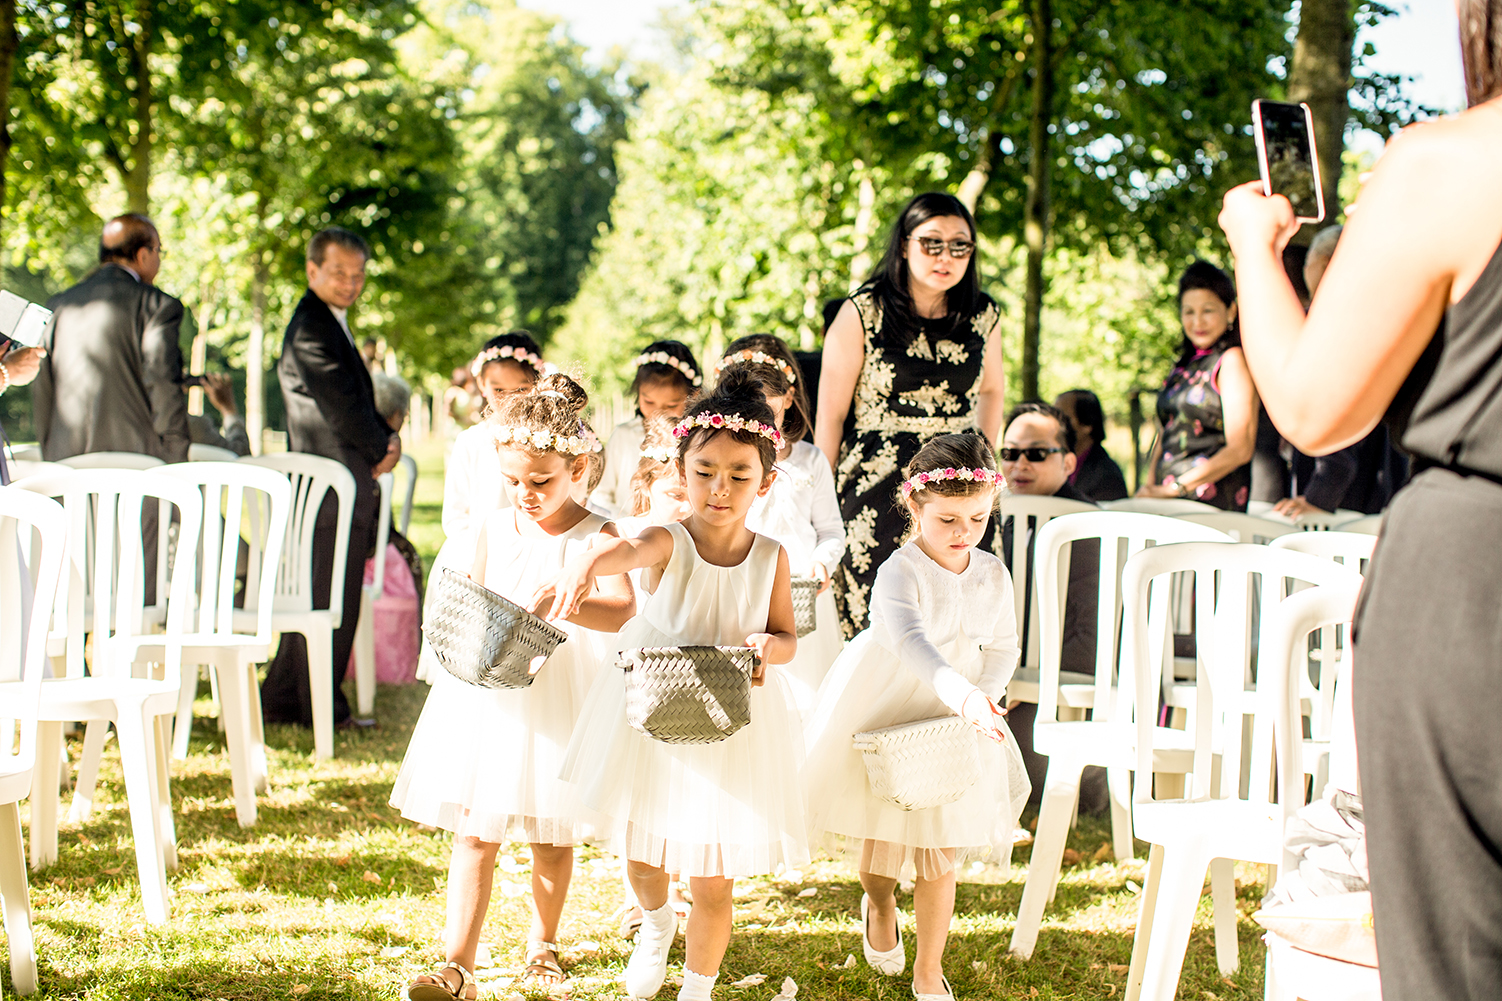 Kevin and Sabrina\'s Wedding Normandy France July 2015Justin Mott/Mott Visuals Weddings http://www.mottvisualsweddings.com